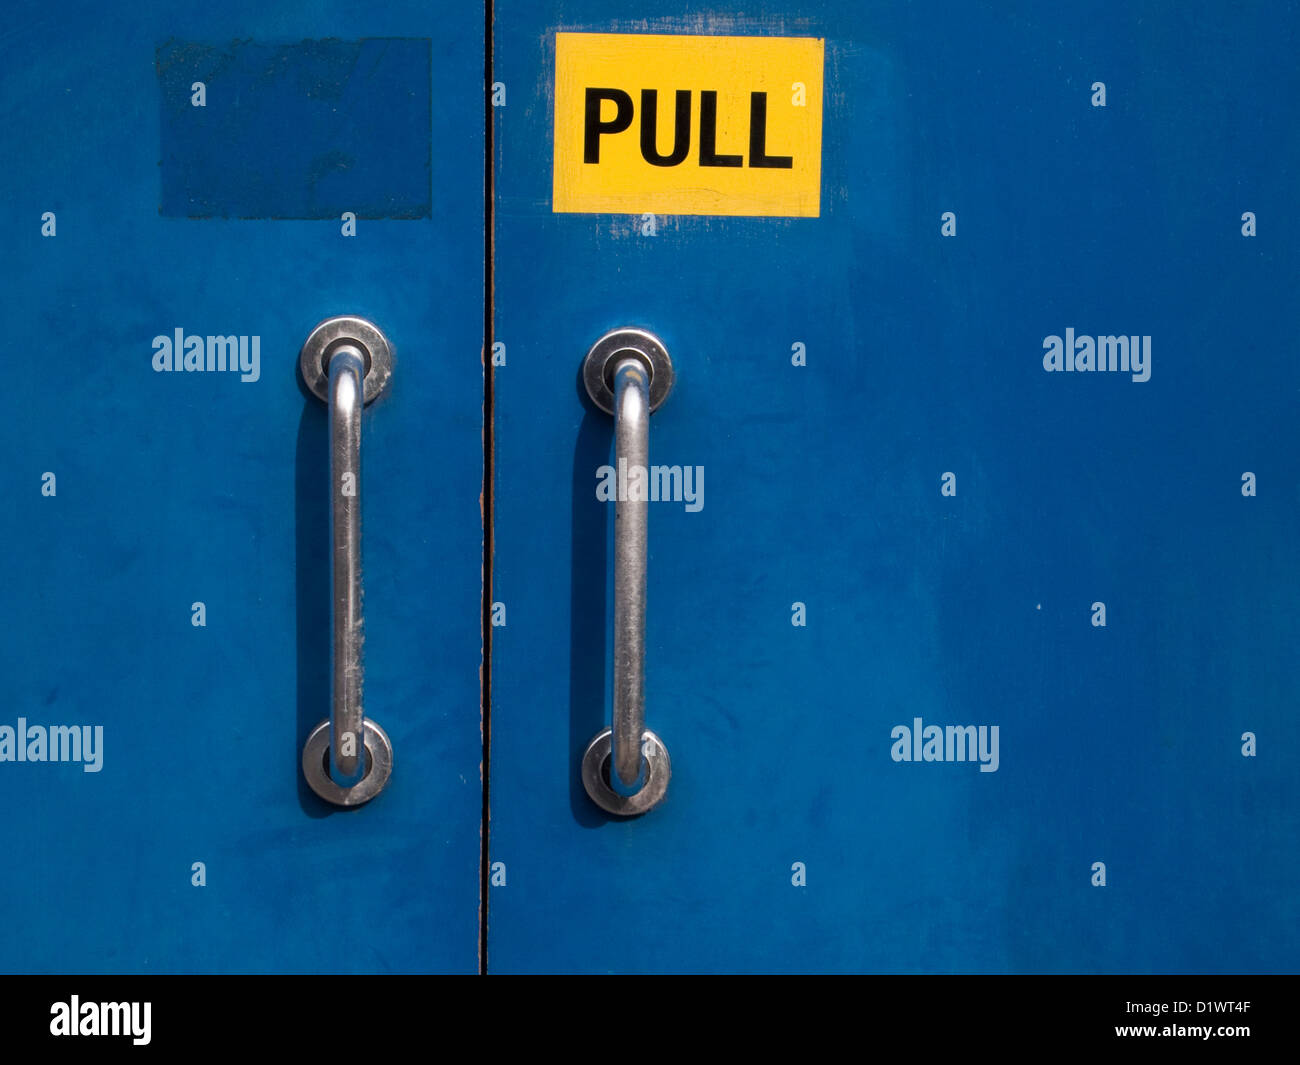 Pull Handles Stock Photos & Pull Handles Stock Images - Alamy